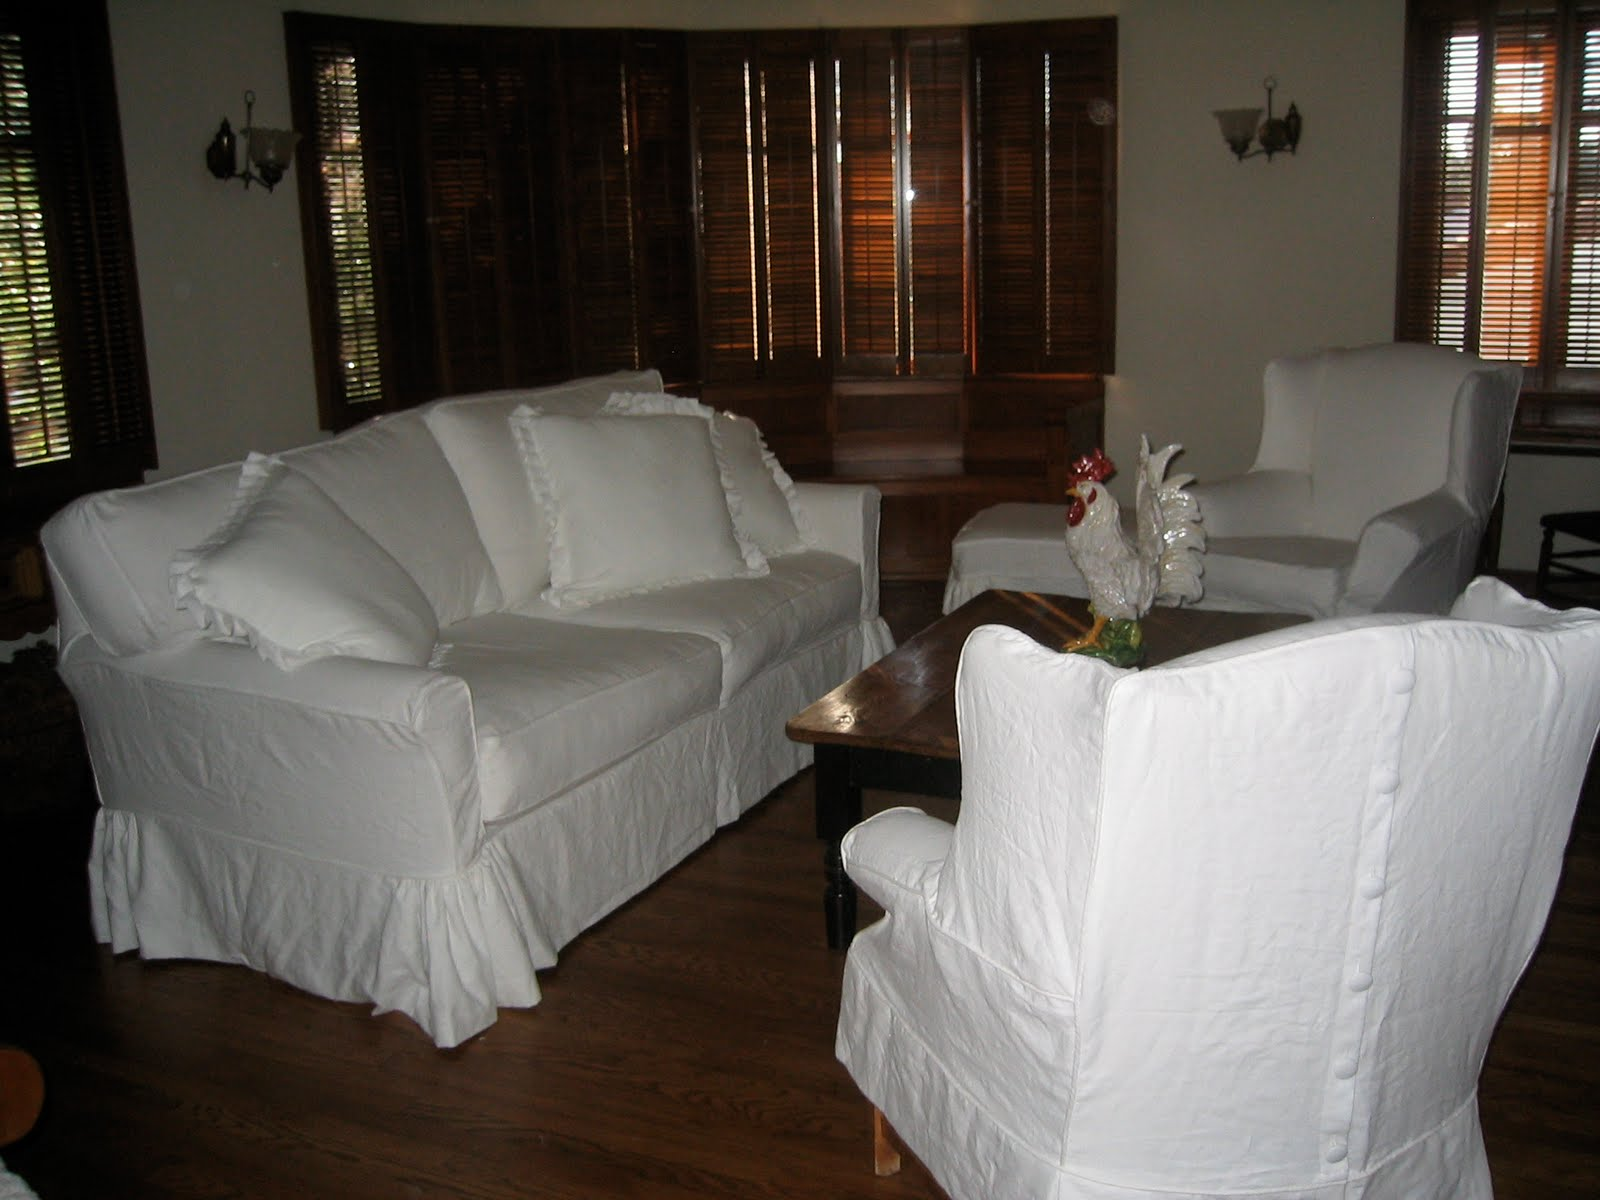 Linen Slipcover Sofas White Outdoor Sofa Table A Little Of This That And The Other Slipcovers